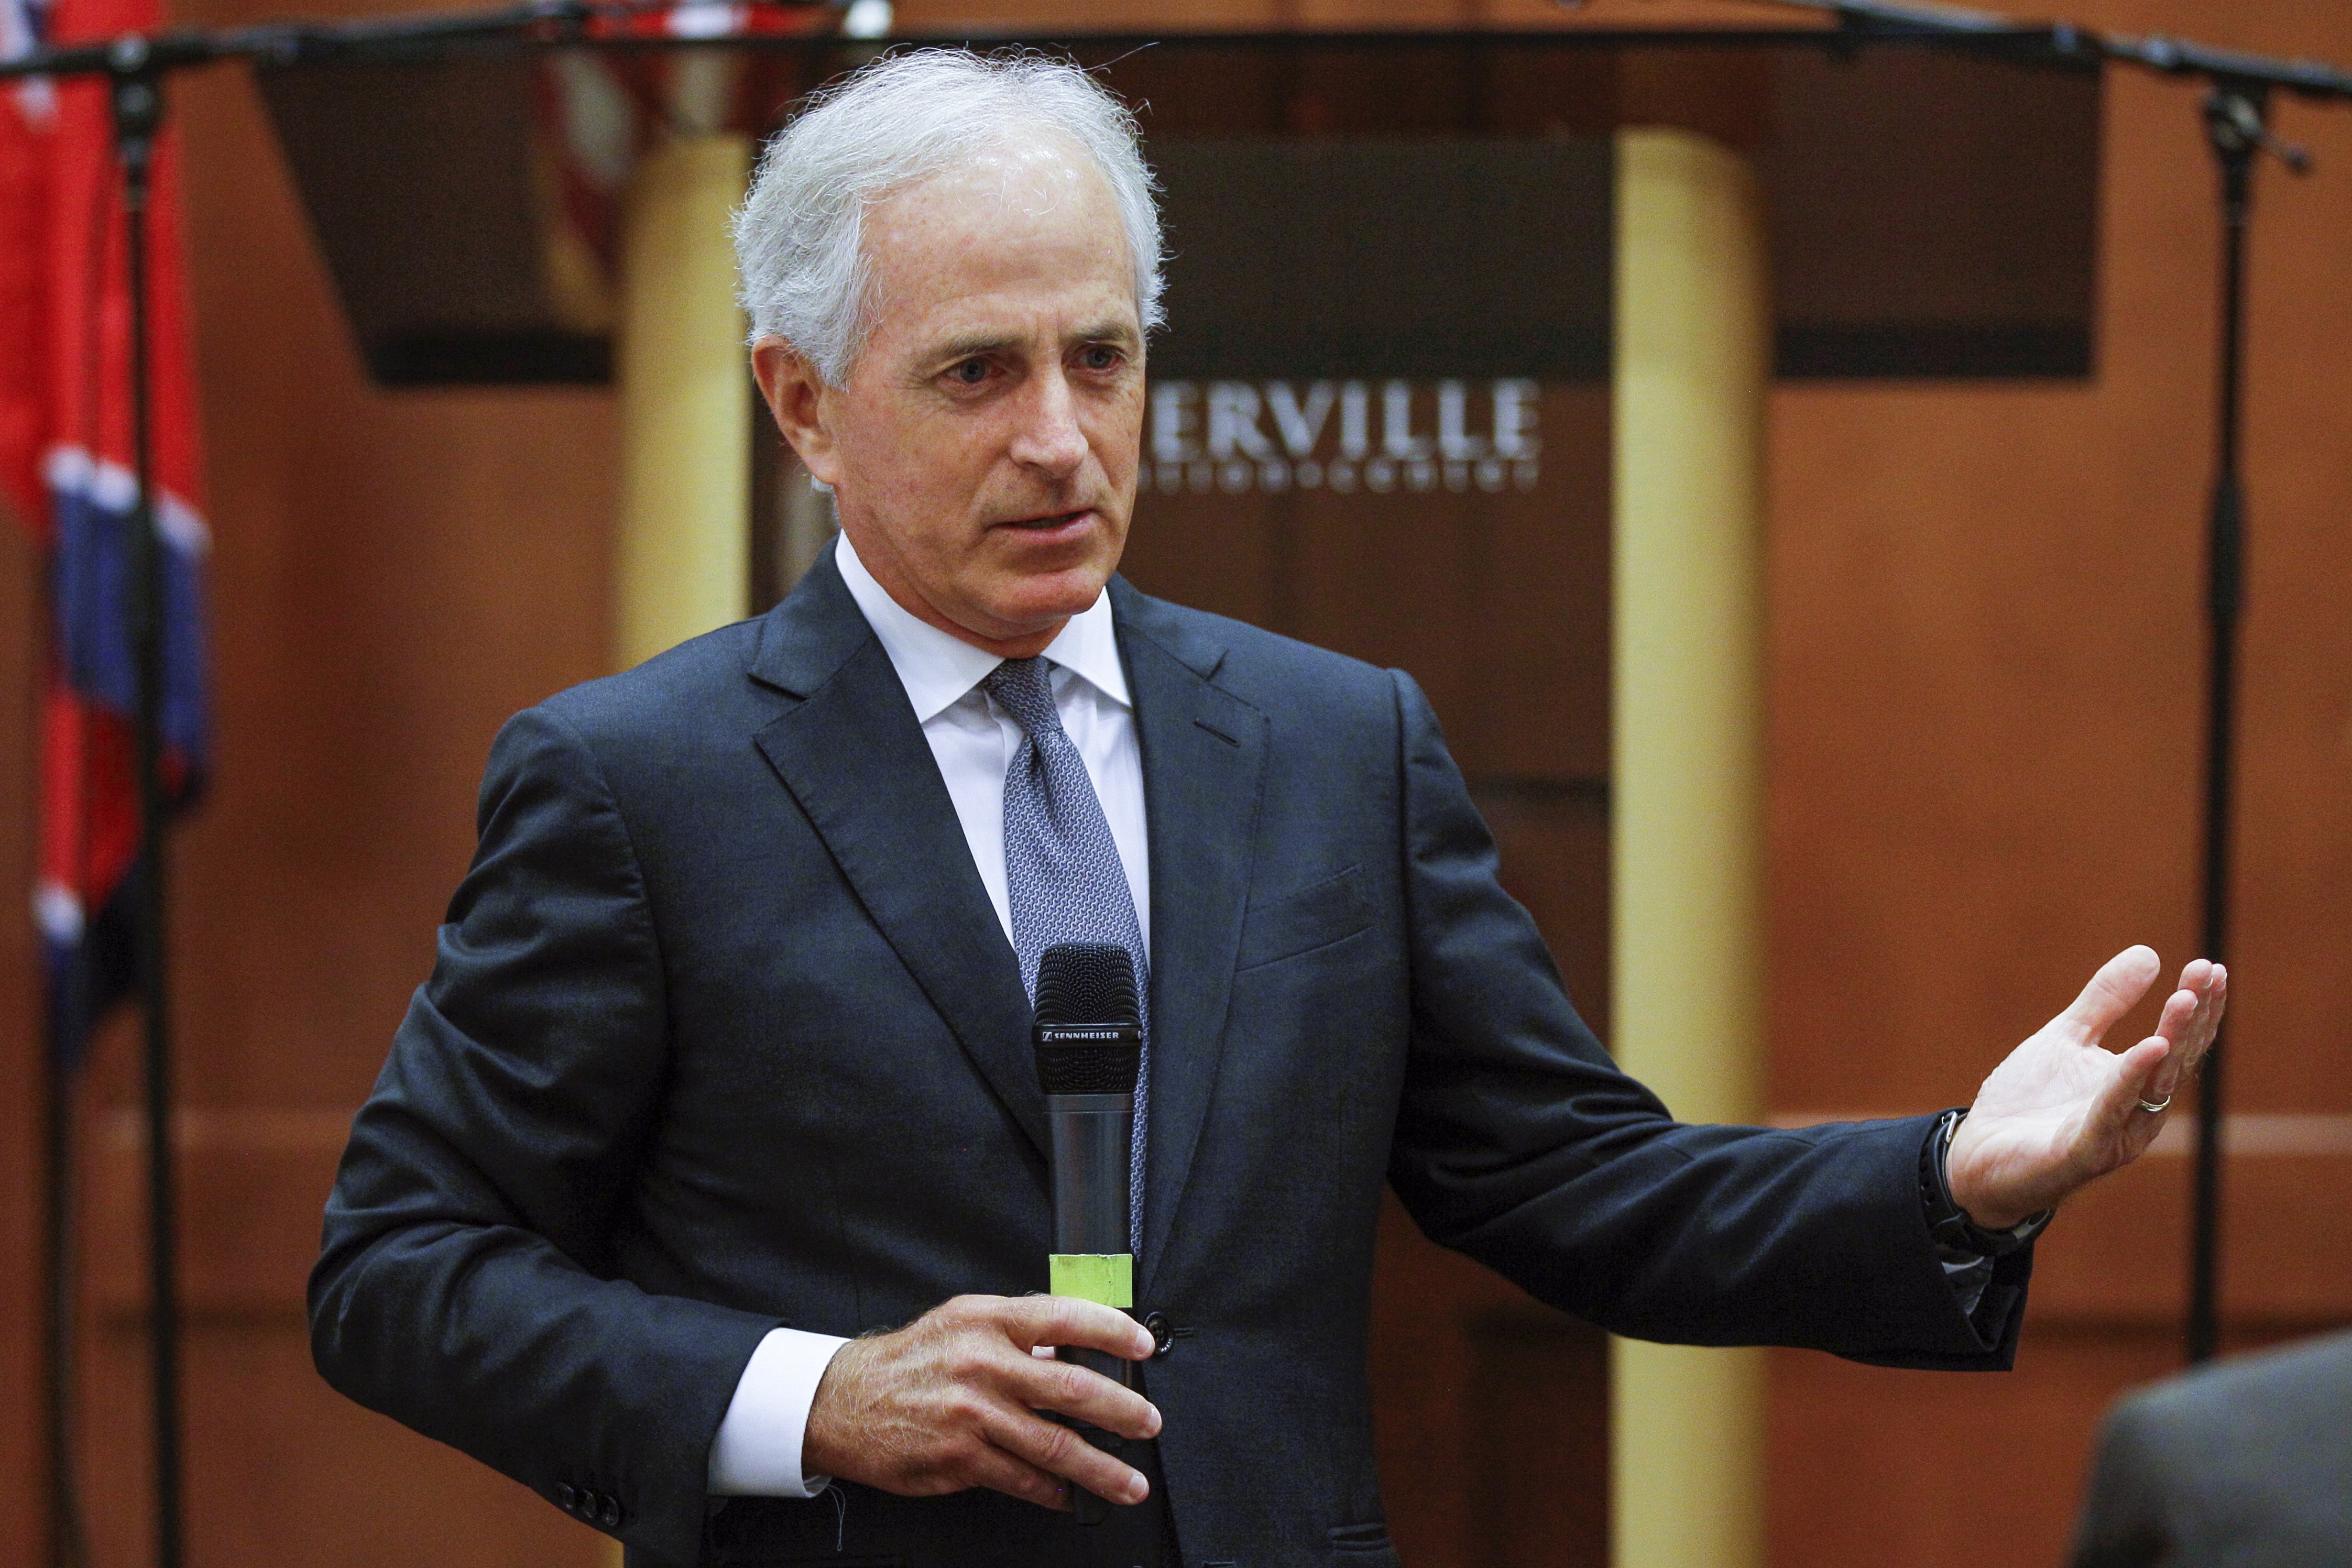 Senate Corker Unplugged FILE - In this Aug. 16, 2017, file photo, Sen. Bob Corker, R-Tenn., speaks to the Sevier County Chamber of Commerce in Sevierville, Tenn. Always one to speak his mind, Corker's new free agent status should make President Donald Trump and the GOP very nervous. The two-term Tennessee Republican isn't seeking re-election. And that gives him even more elbow room to say what he wants and vote how he pleases over the next 15 months as Trump and the party's top leaders on Capitol Hill struggle to get their agenda on track (AP Photo/Erik Schelzig, File)